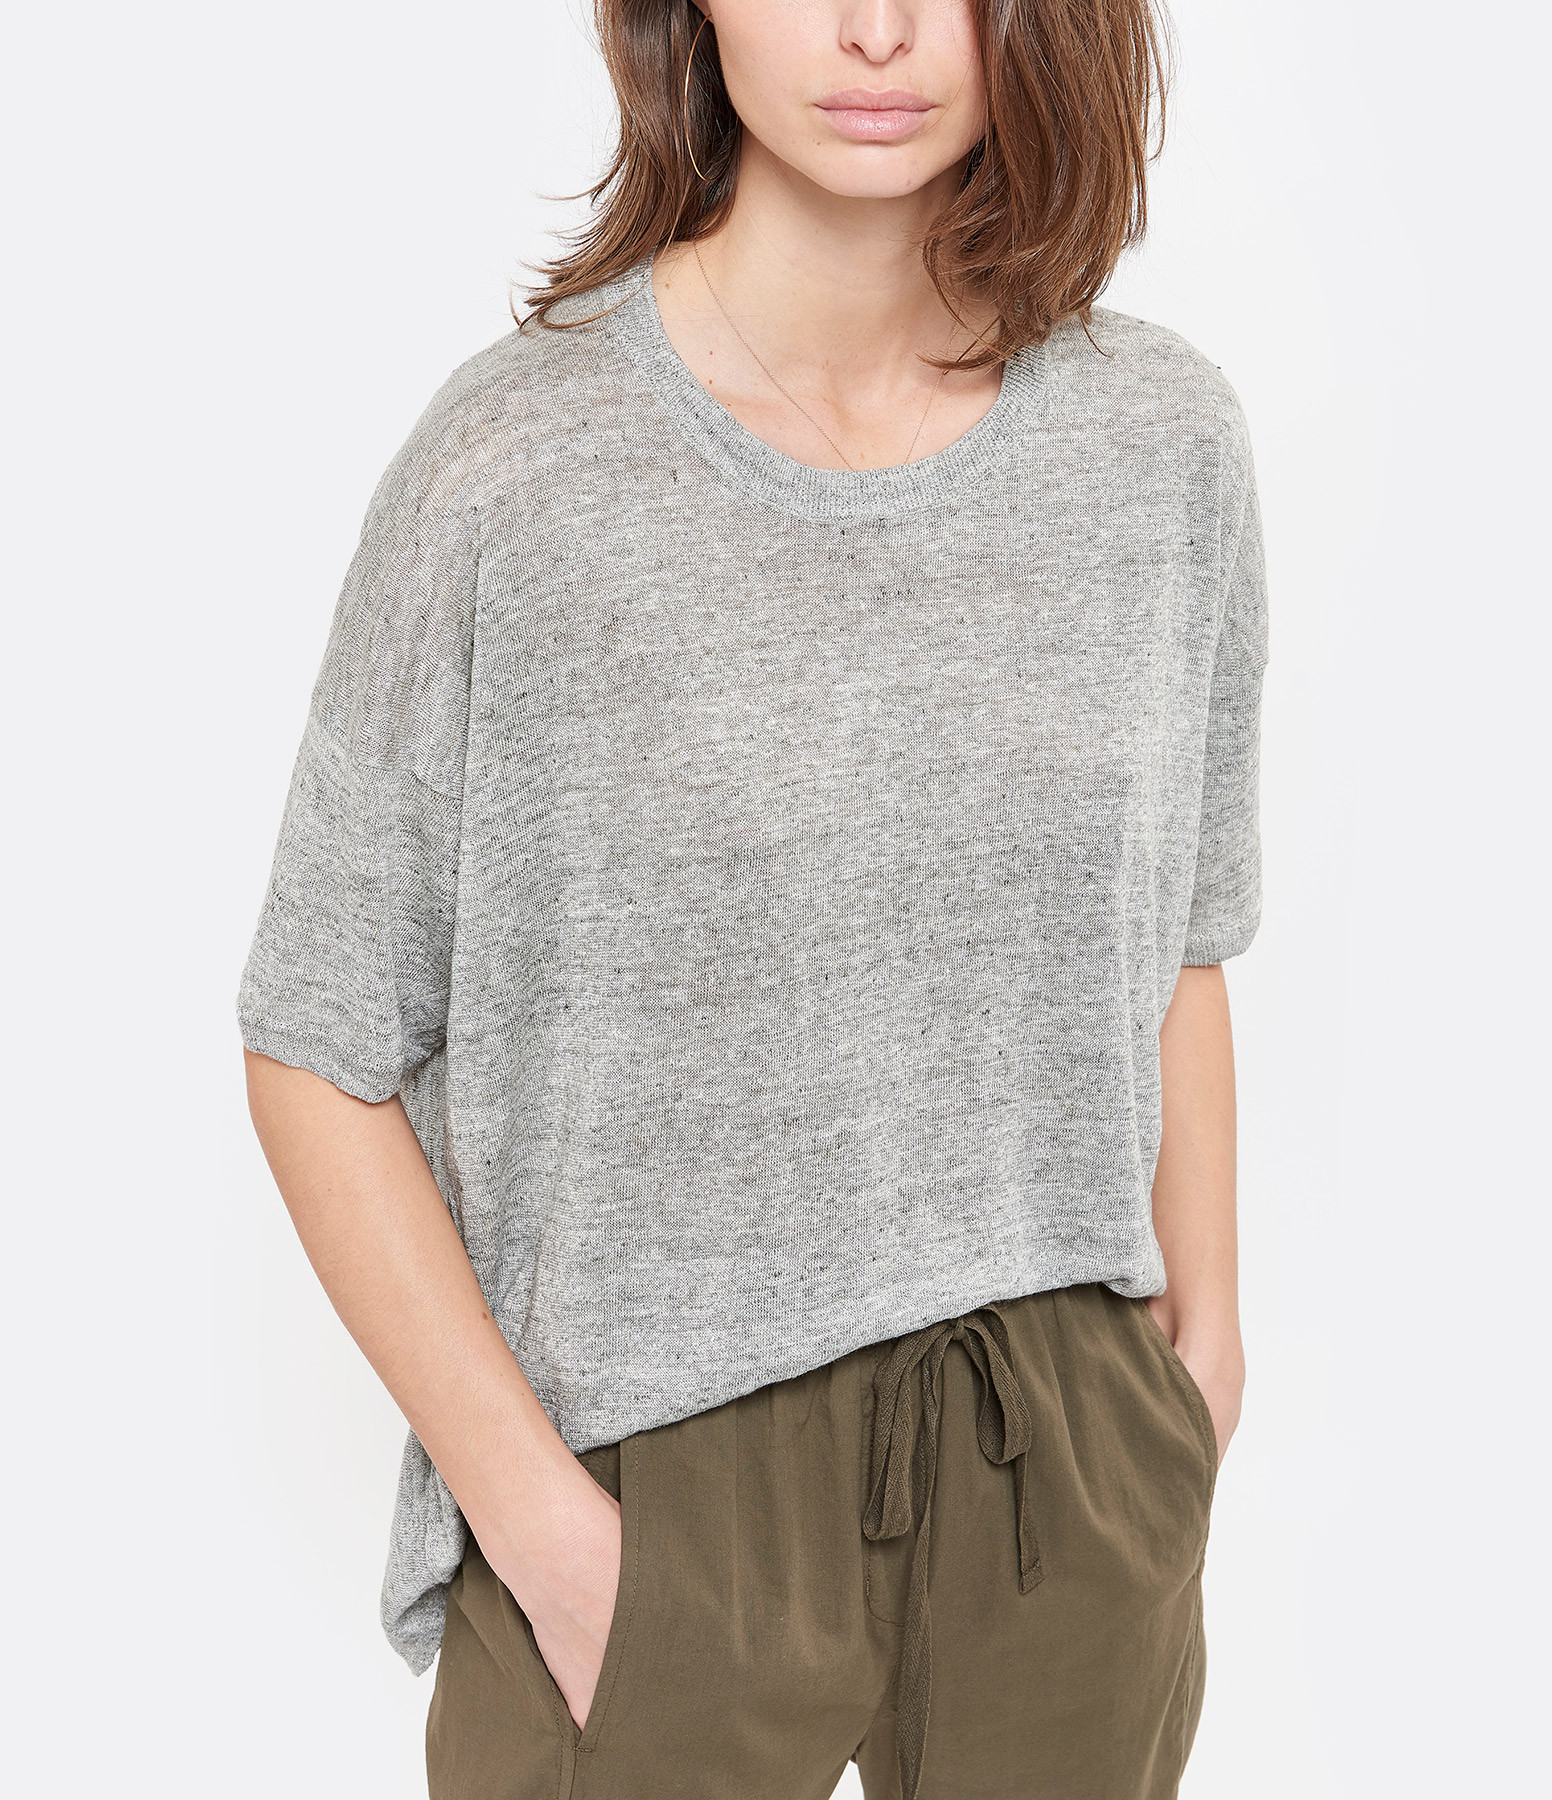 CT PLAGE - Pull Col Rond Lin Gris Clair